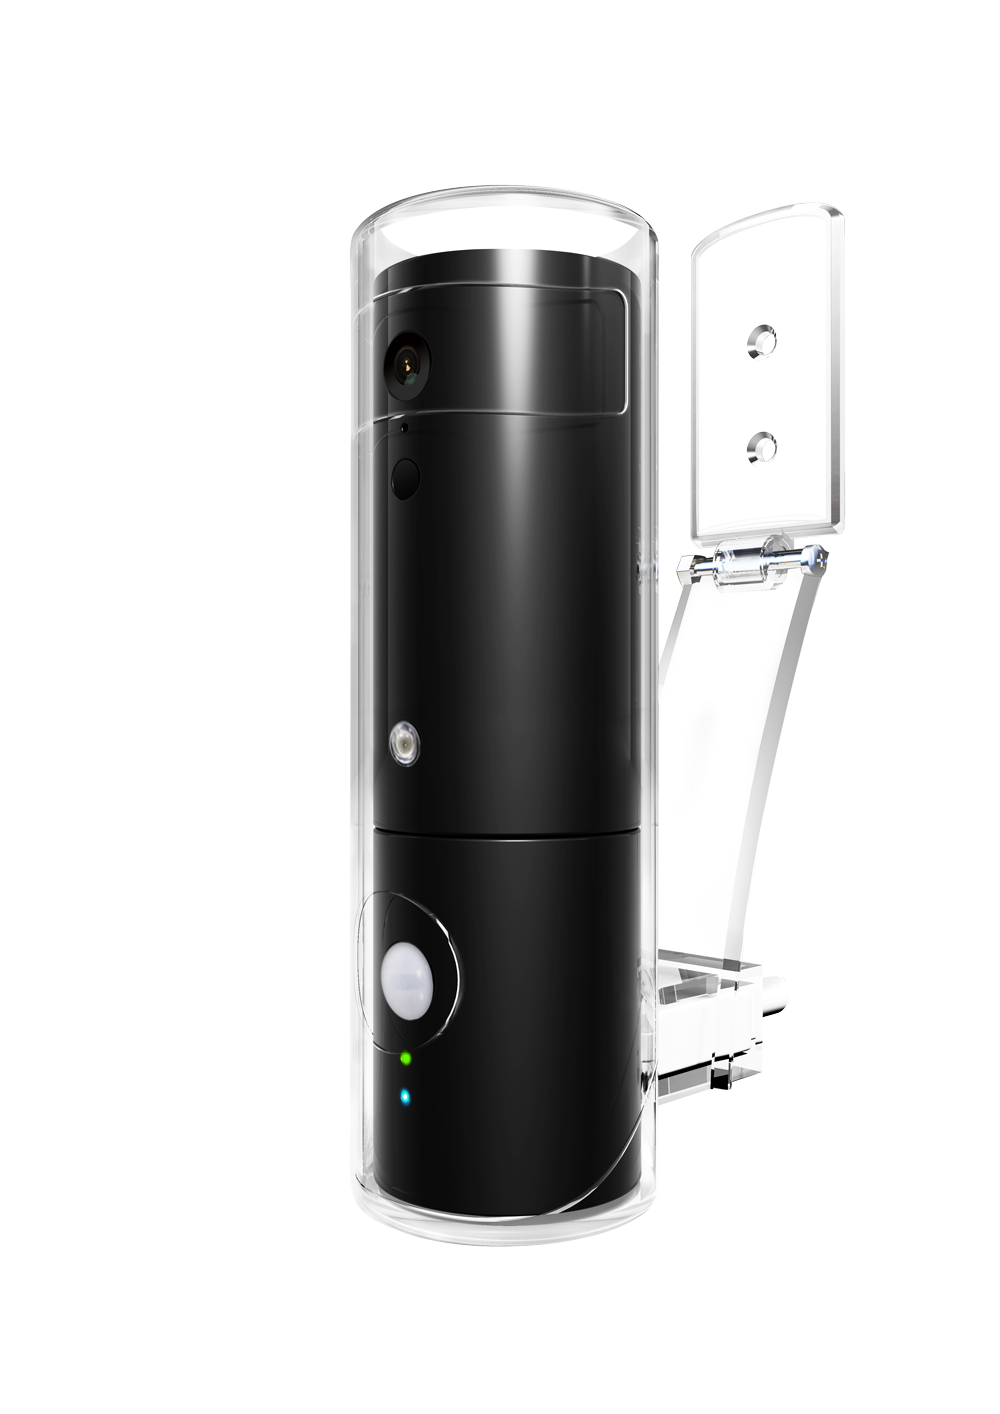 Amaryllo Robot Security iSensor HD Patio Home Security Camera